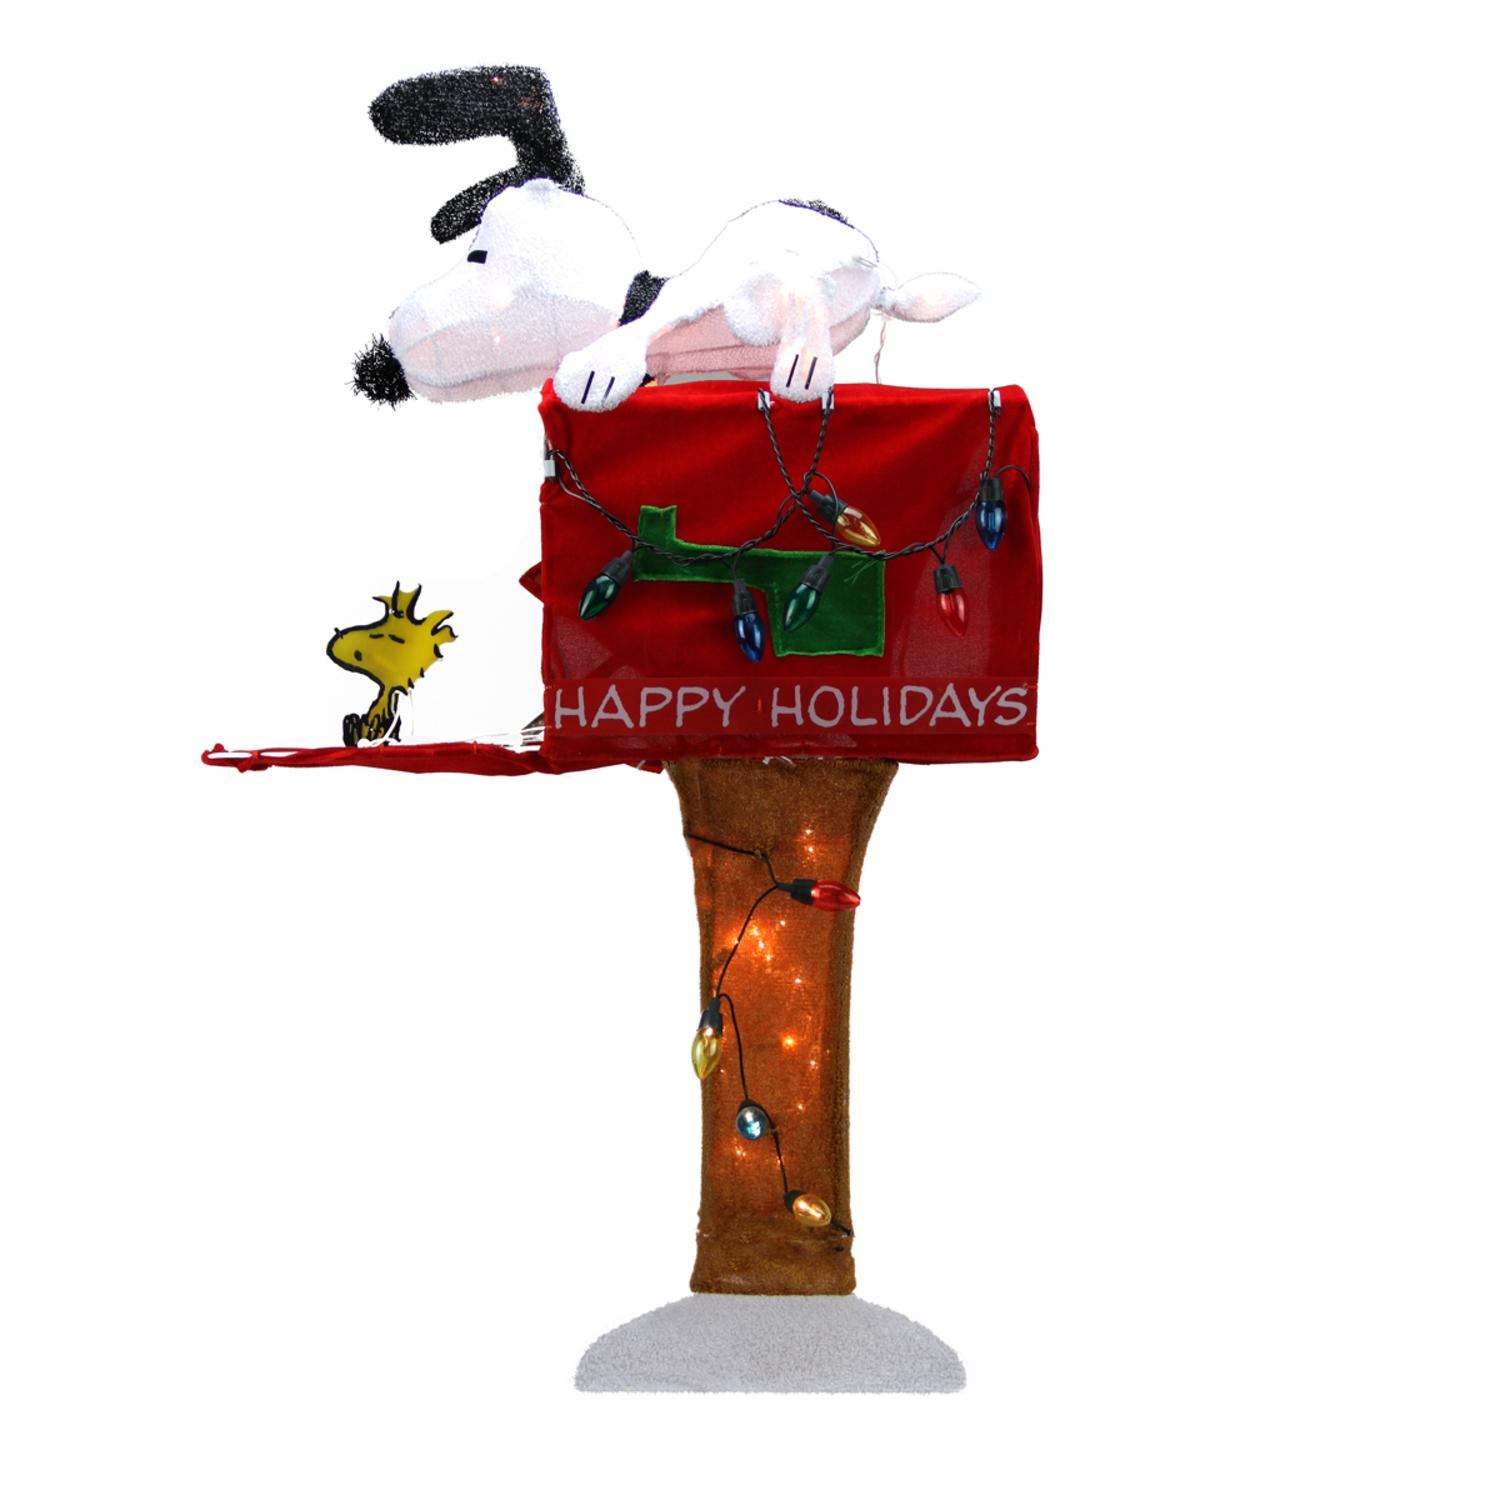 """36"""" Pre-Lit Peanuts Snoopy with Red Mailbox Animated Christmas Outdoor Decoration - Clear Lights"""